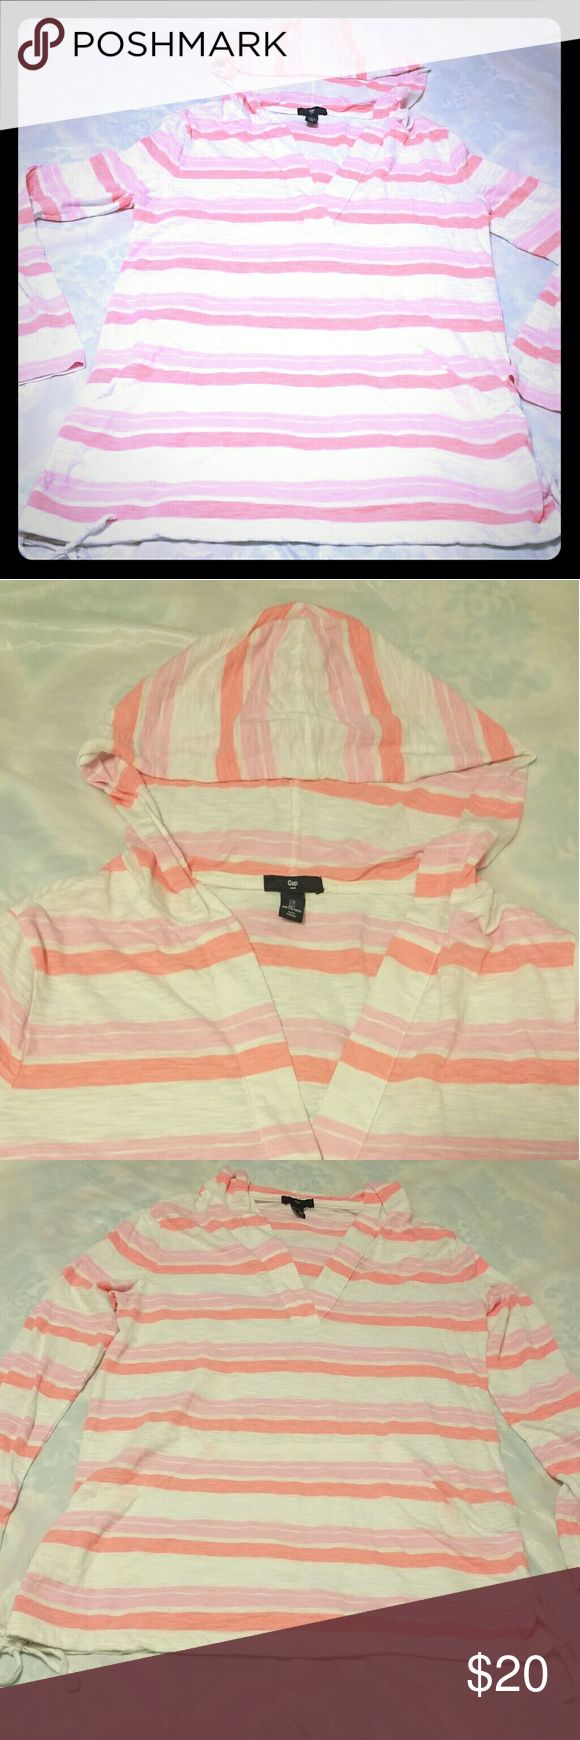 Gap long sleeve hoodie light pull over size large Gap light pullover hooded long sleeve shirt bright orange pink and white size large ladies gap Jackets & Coats Blazers